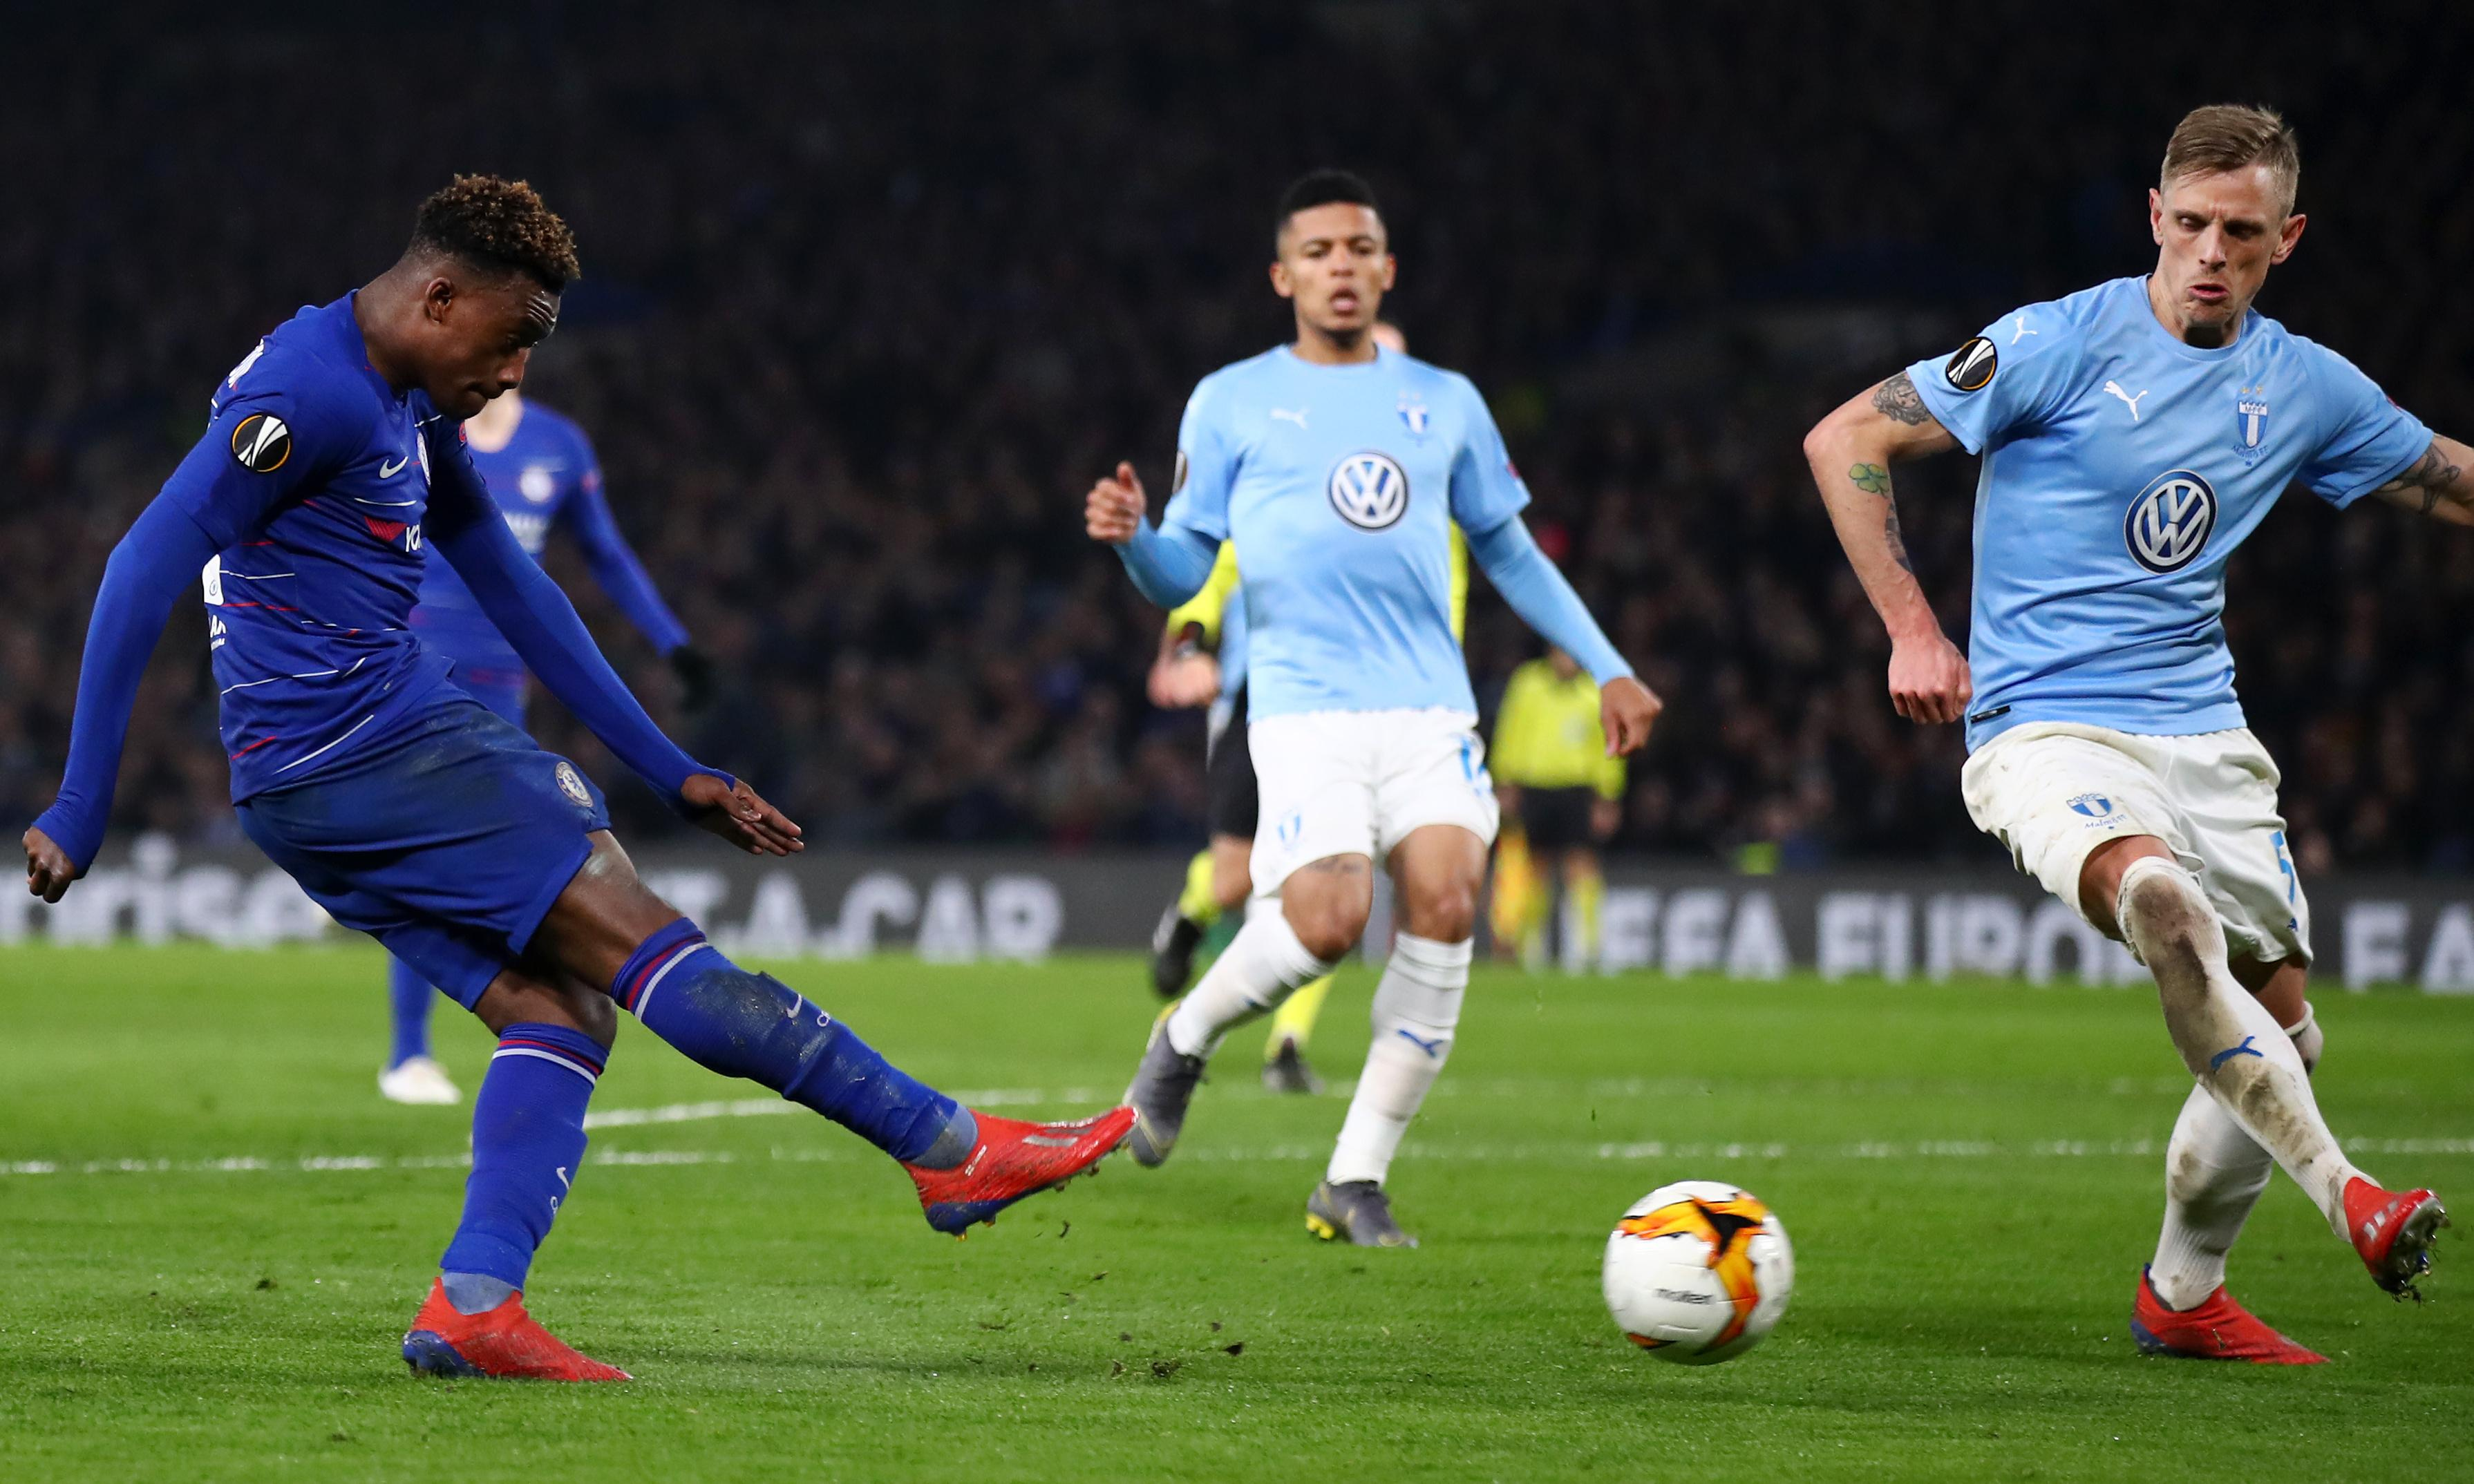 Callum Hudson-Odoi seals comfortable win for Chelsea over Malmö